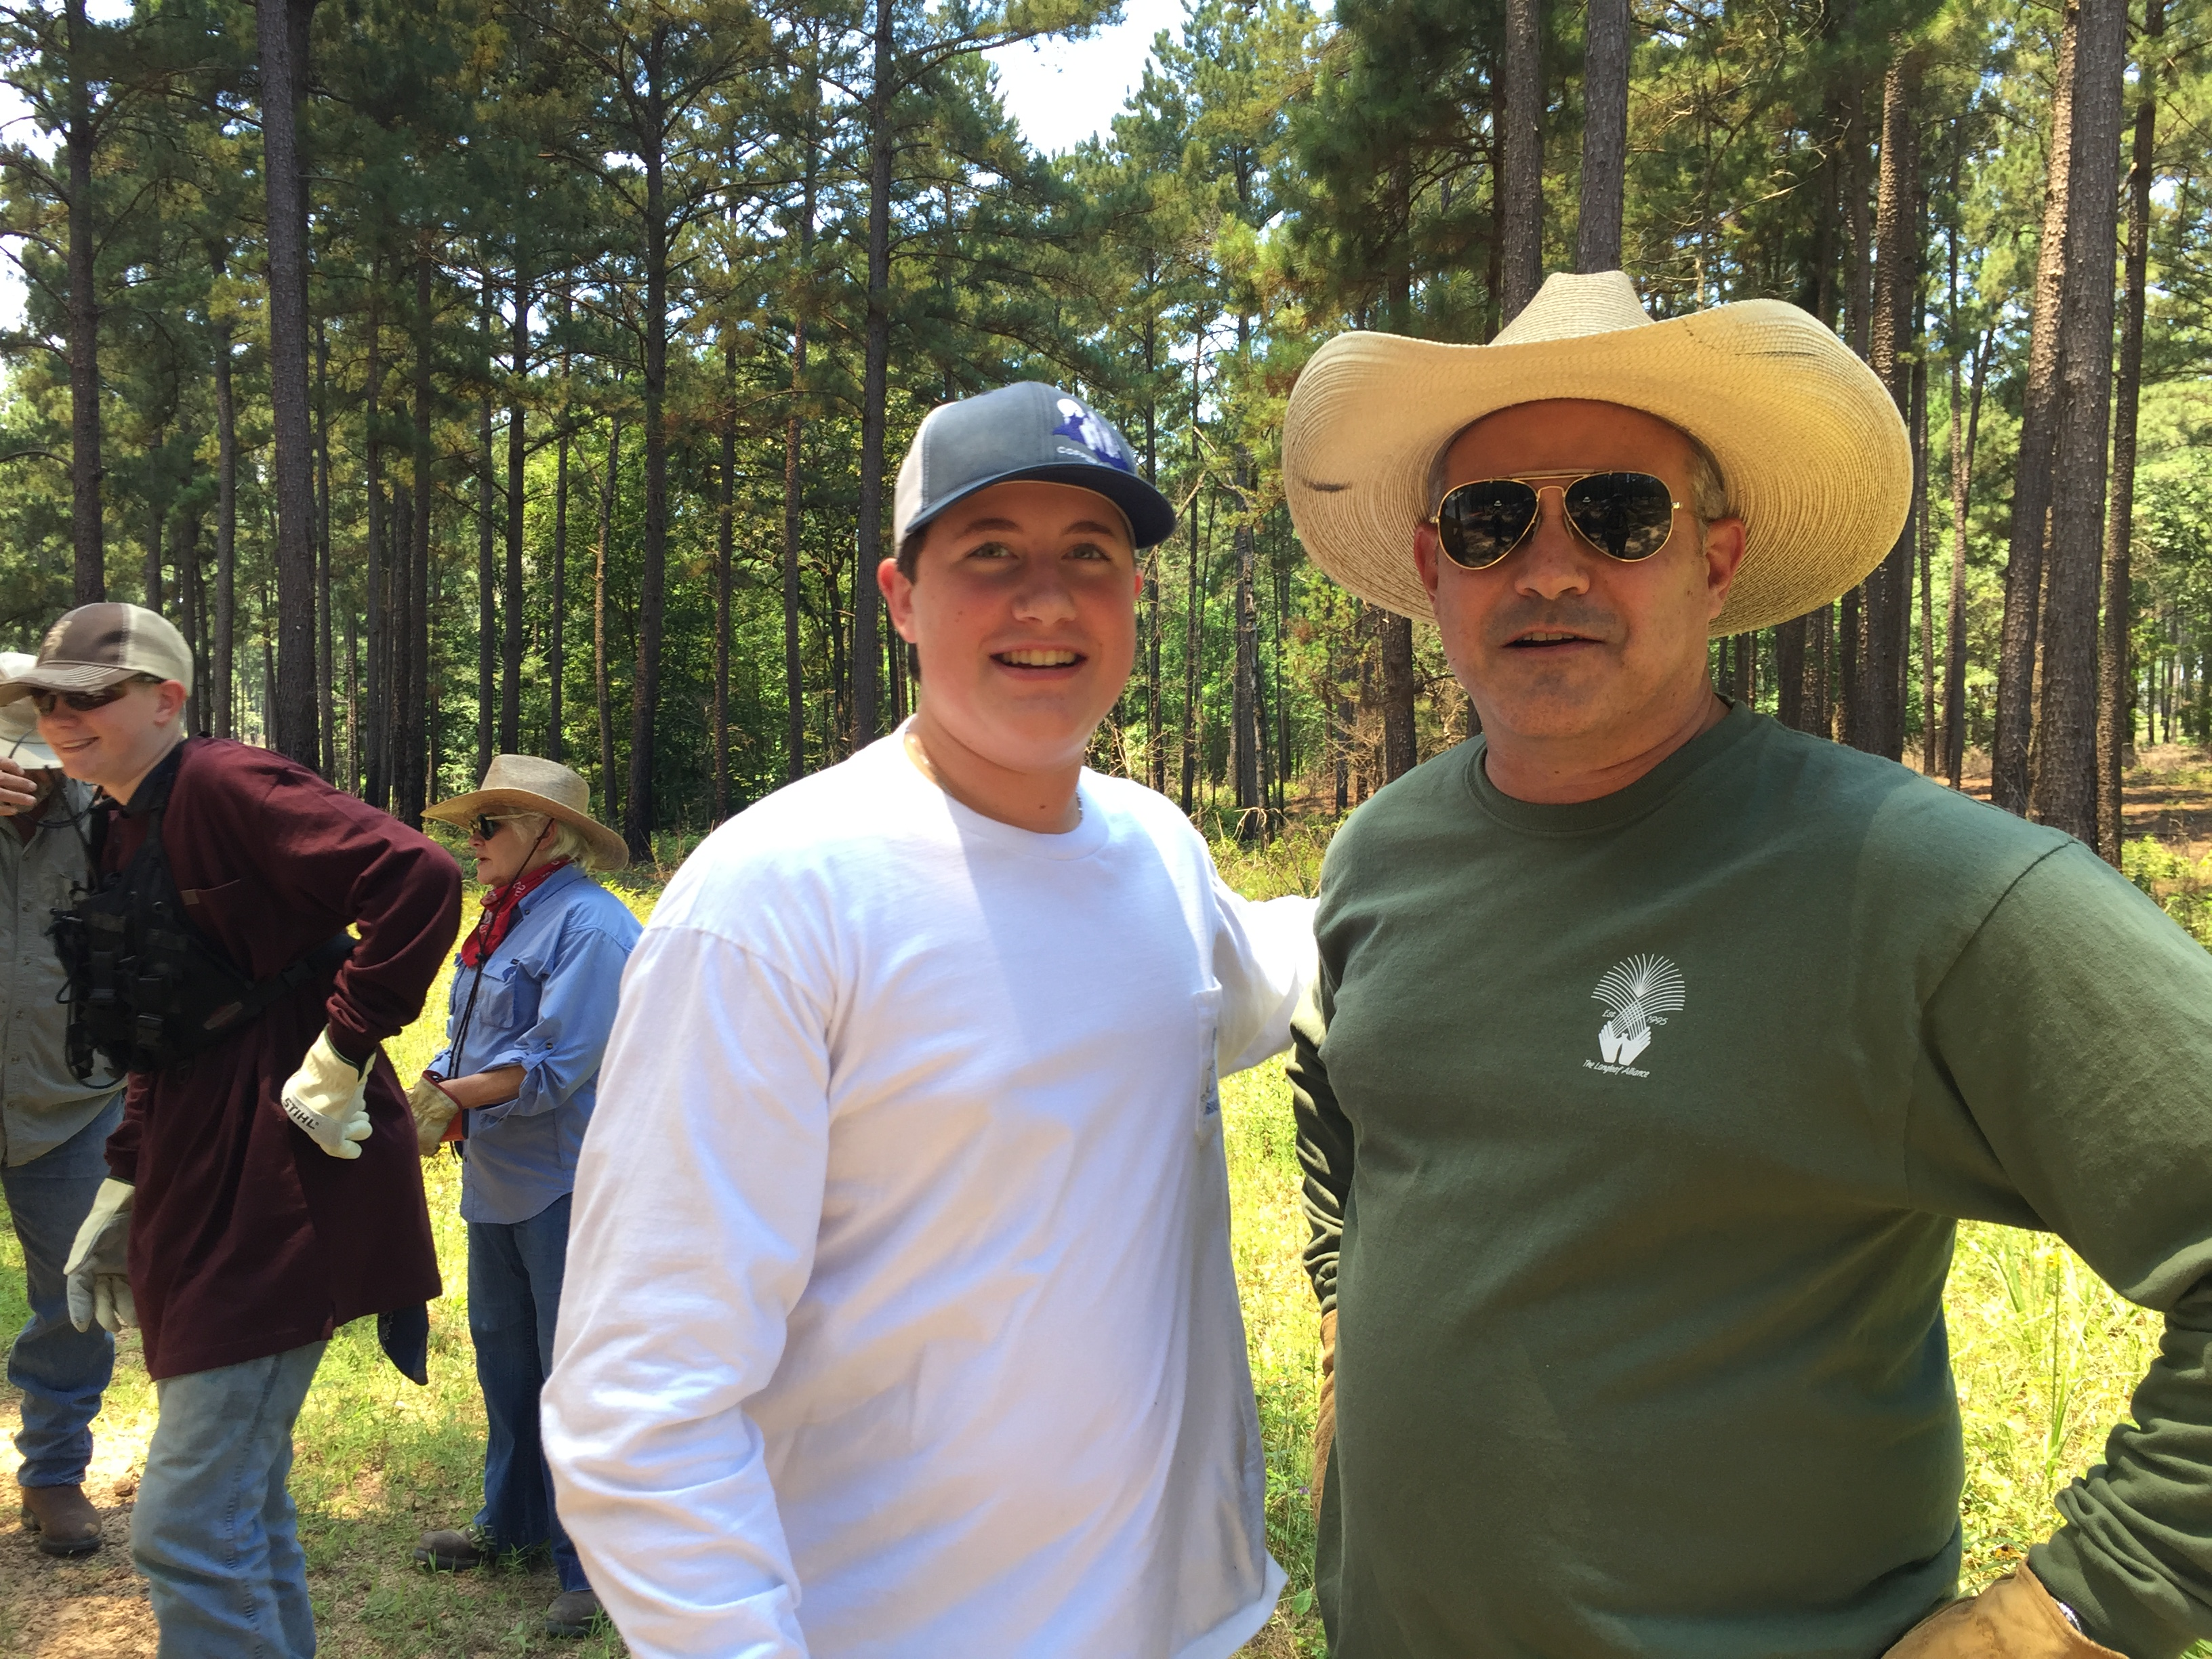 Trey Whitley and his son Cole attended the course to learn more about burning on their land for wildlife benefit and longleaf restoration. Photo credit: Kent Evans